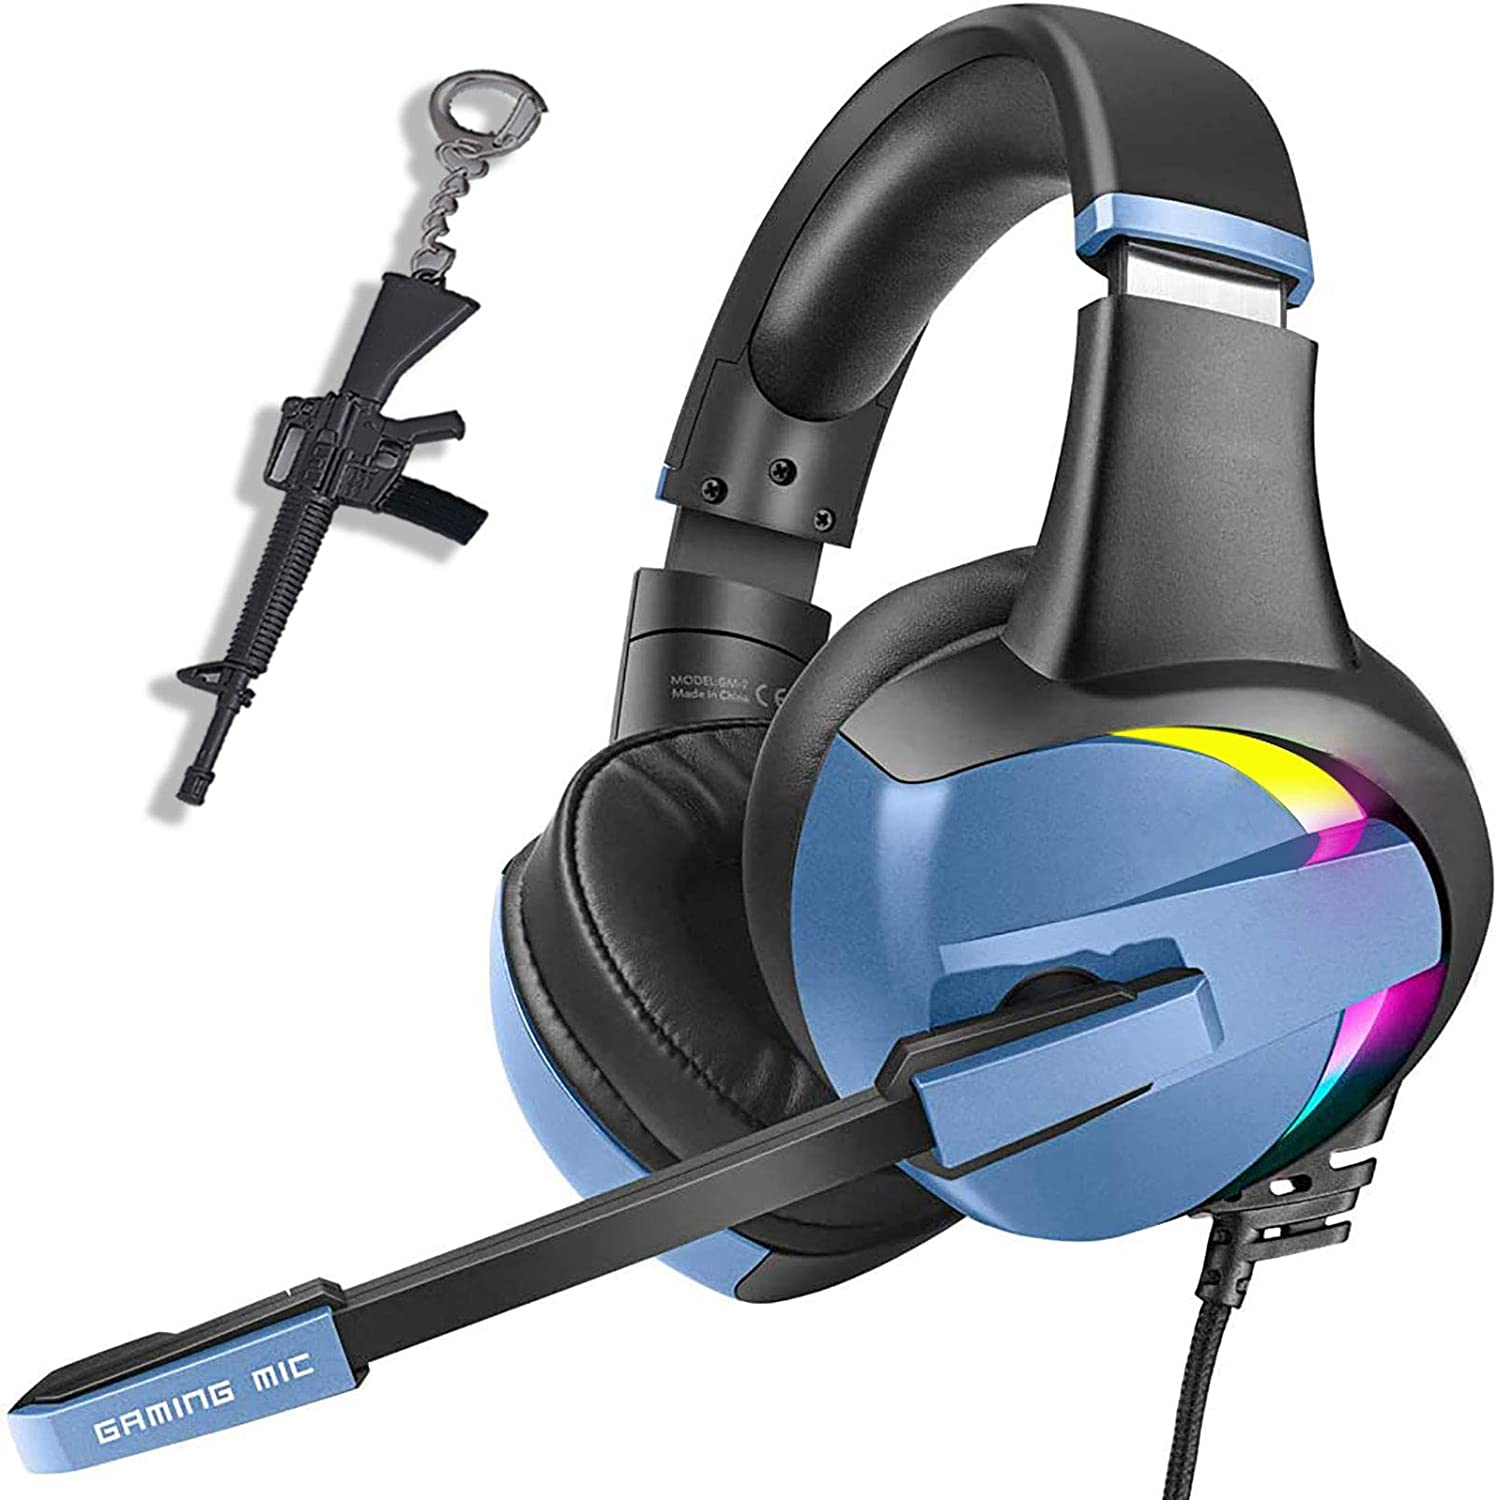 PS4 Gaming Headset Pro RGB Gaming Headphone for Xbox one PC with Mic Stereo Surround Over-Ear Headset 7 Colors Rainbow Light& Noise Cancelling for Laptop Tablet Mac Kids